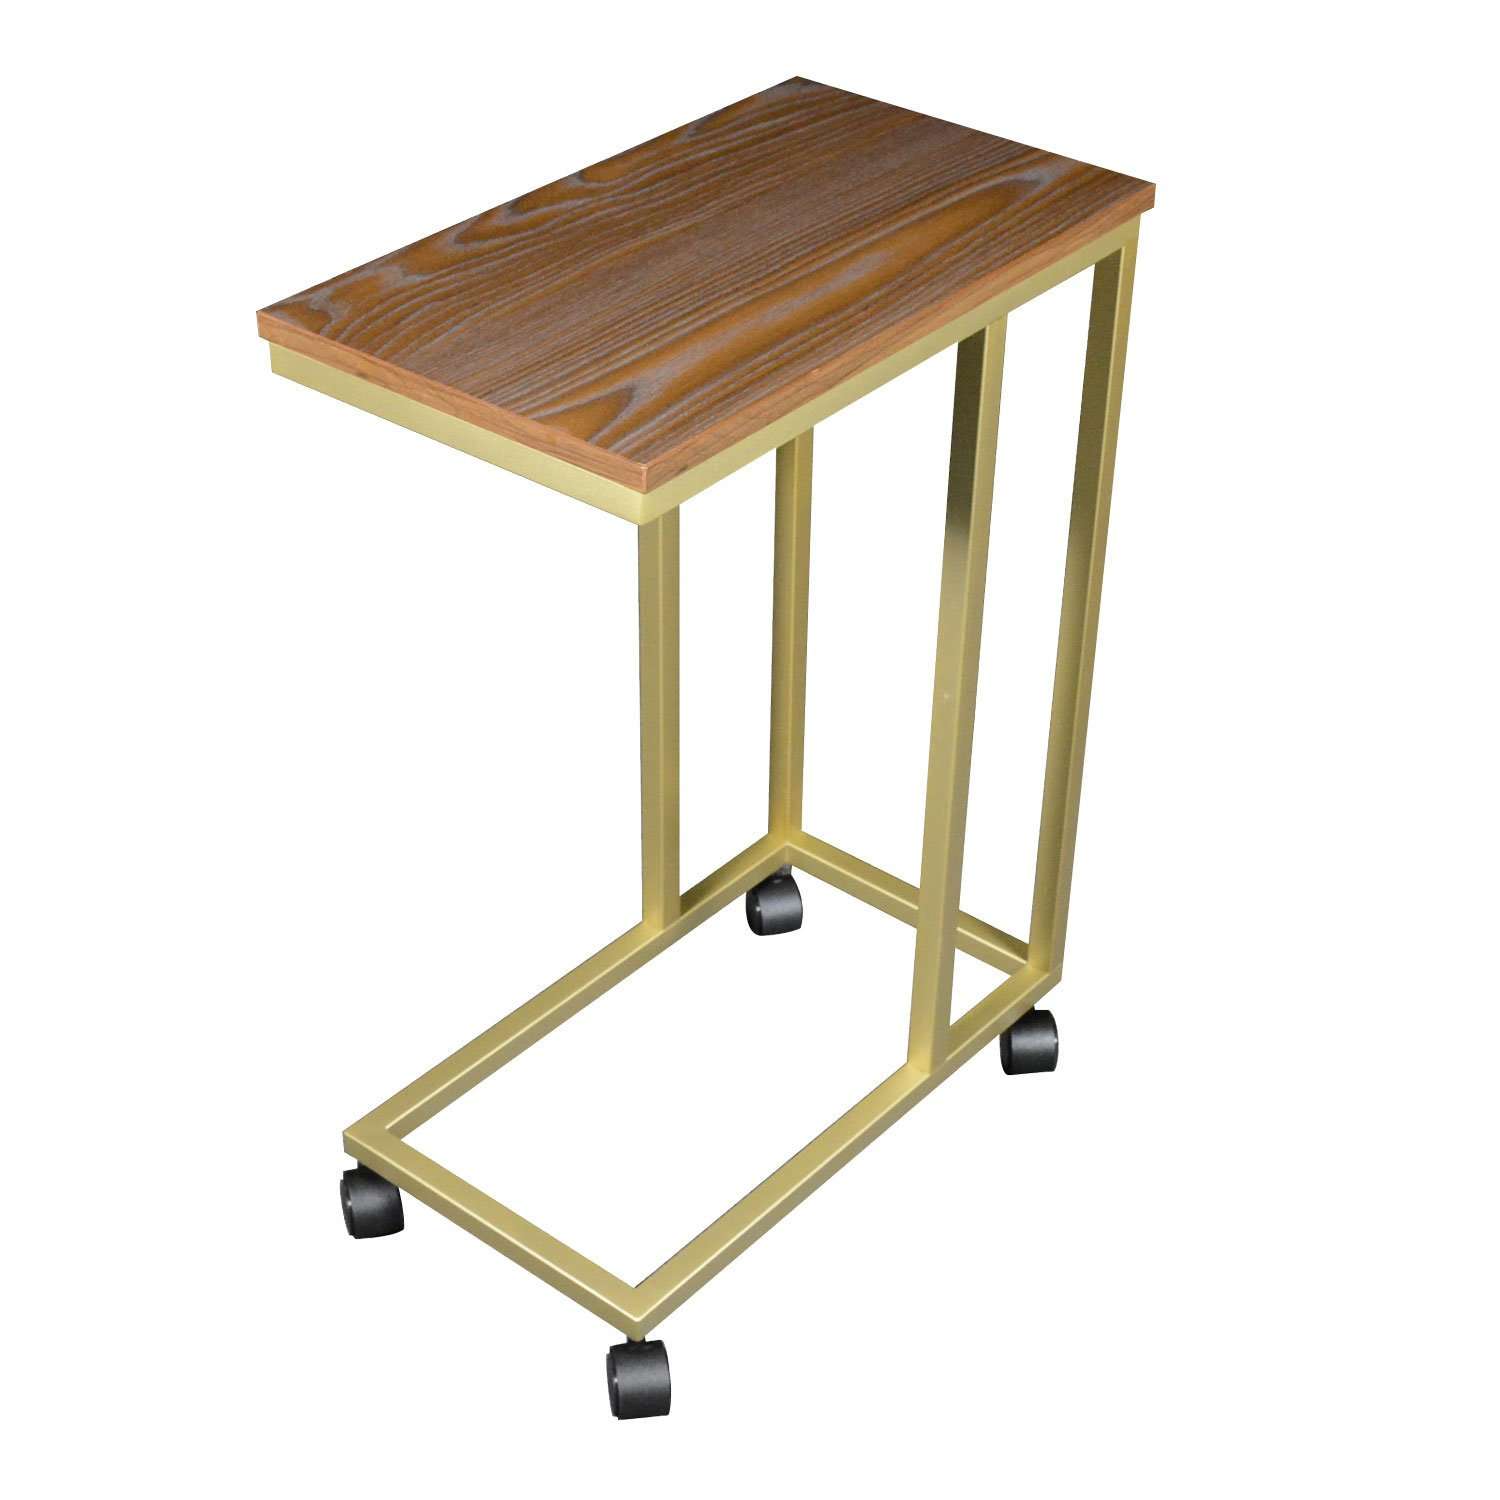 The Stephanie C Table/End Table/Laptop Stand, Oak Wood Finish Top w/Champagne Gold Base and Casters